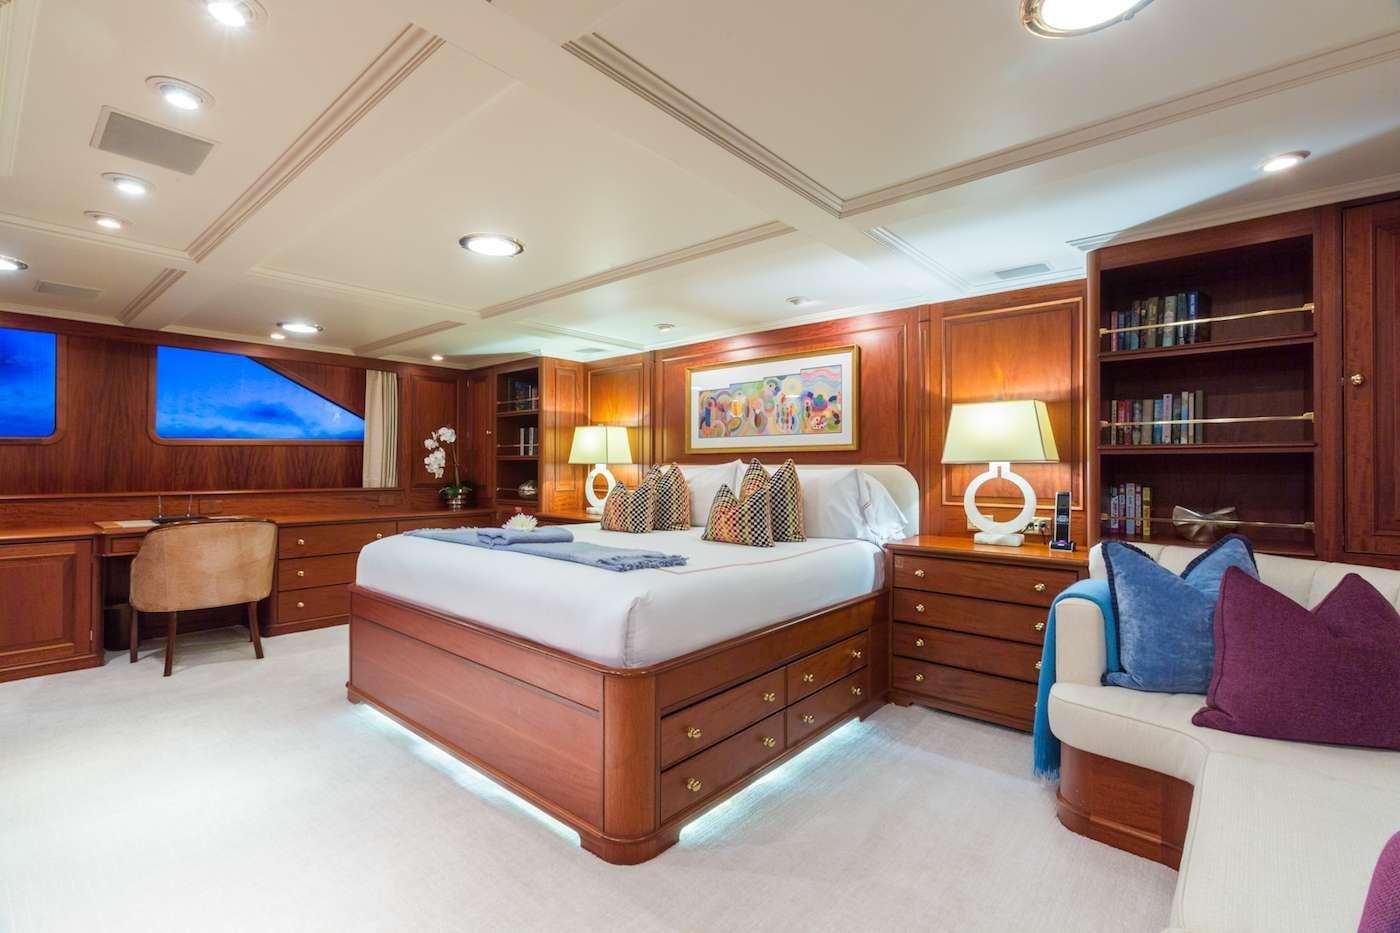 Motor Yacht 'LADY J' Master Stateroom, 12 PAX, 9 Crew, 142.00 Ft, 43.00 Meters, Built 1997, Palmer Johnson, Refit Year 2017